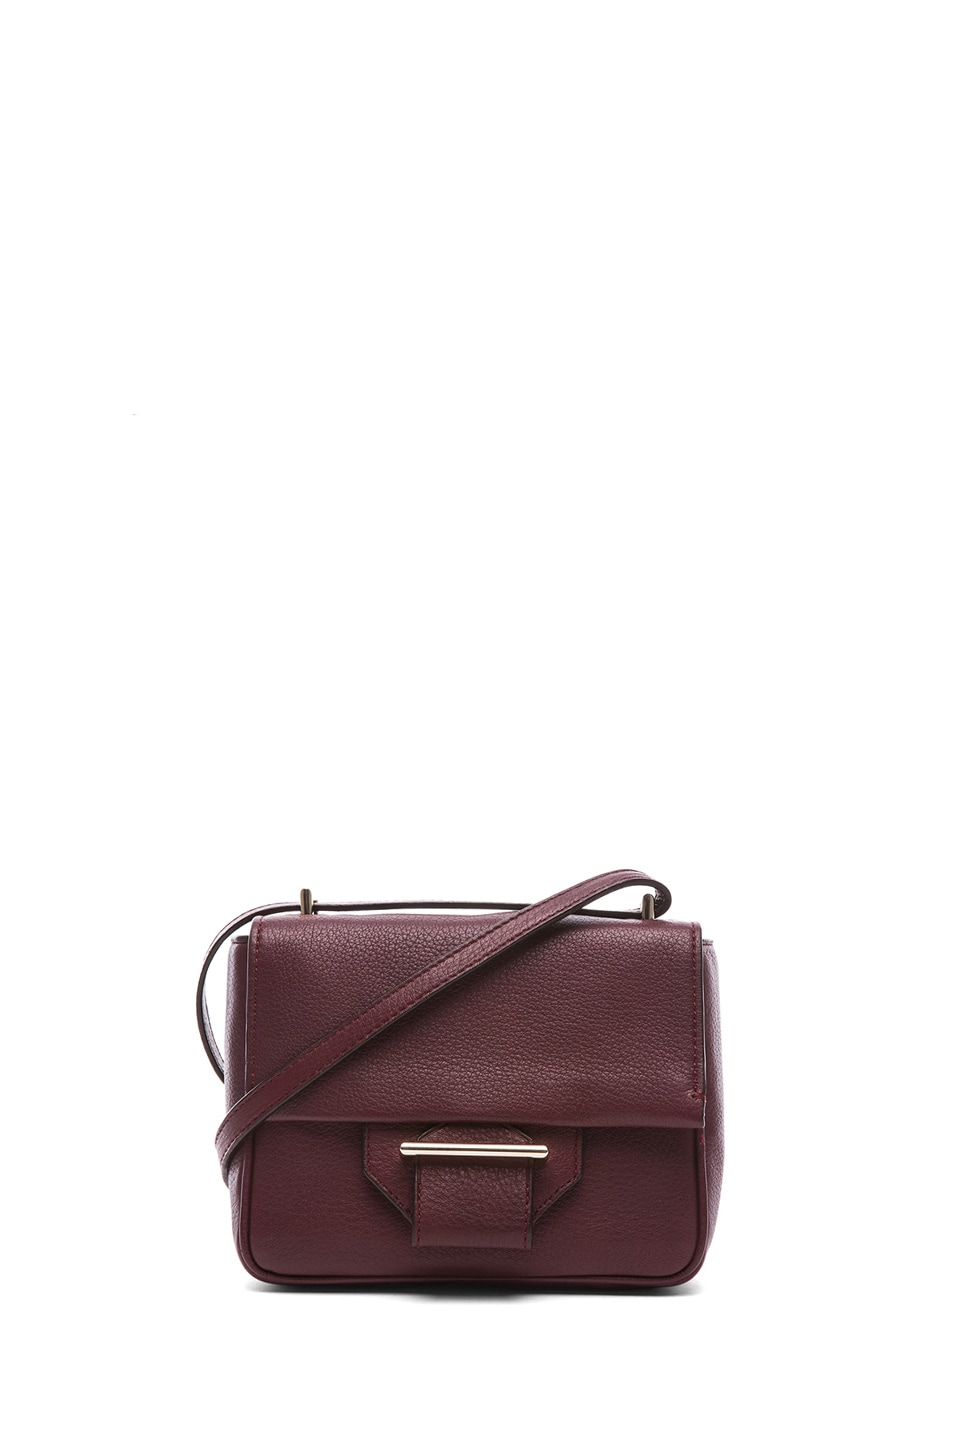 Image 1 of Reed Krakoff Mini Standard Shoulder Bag in Cordovan